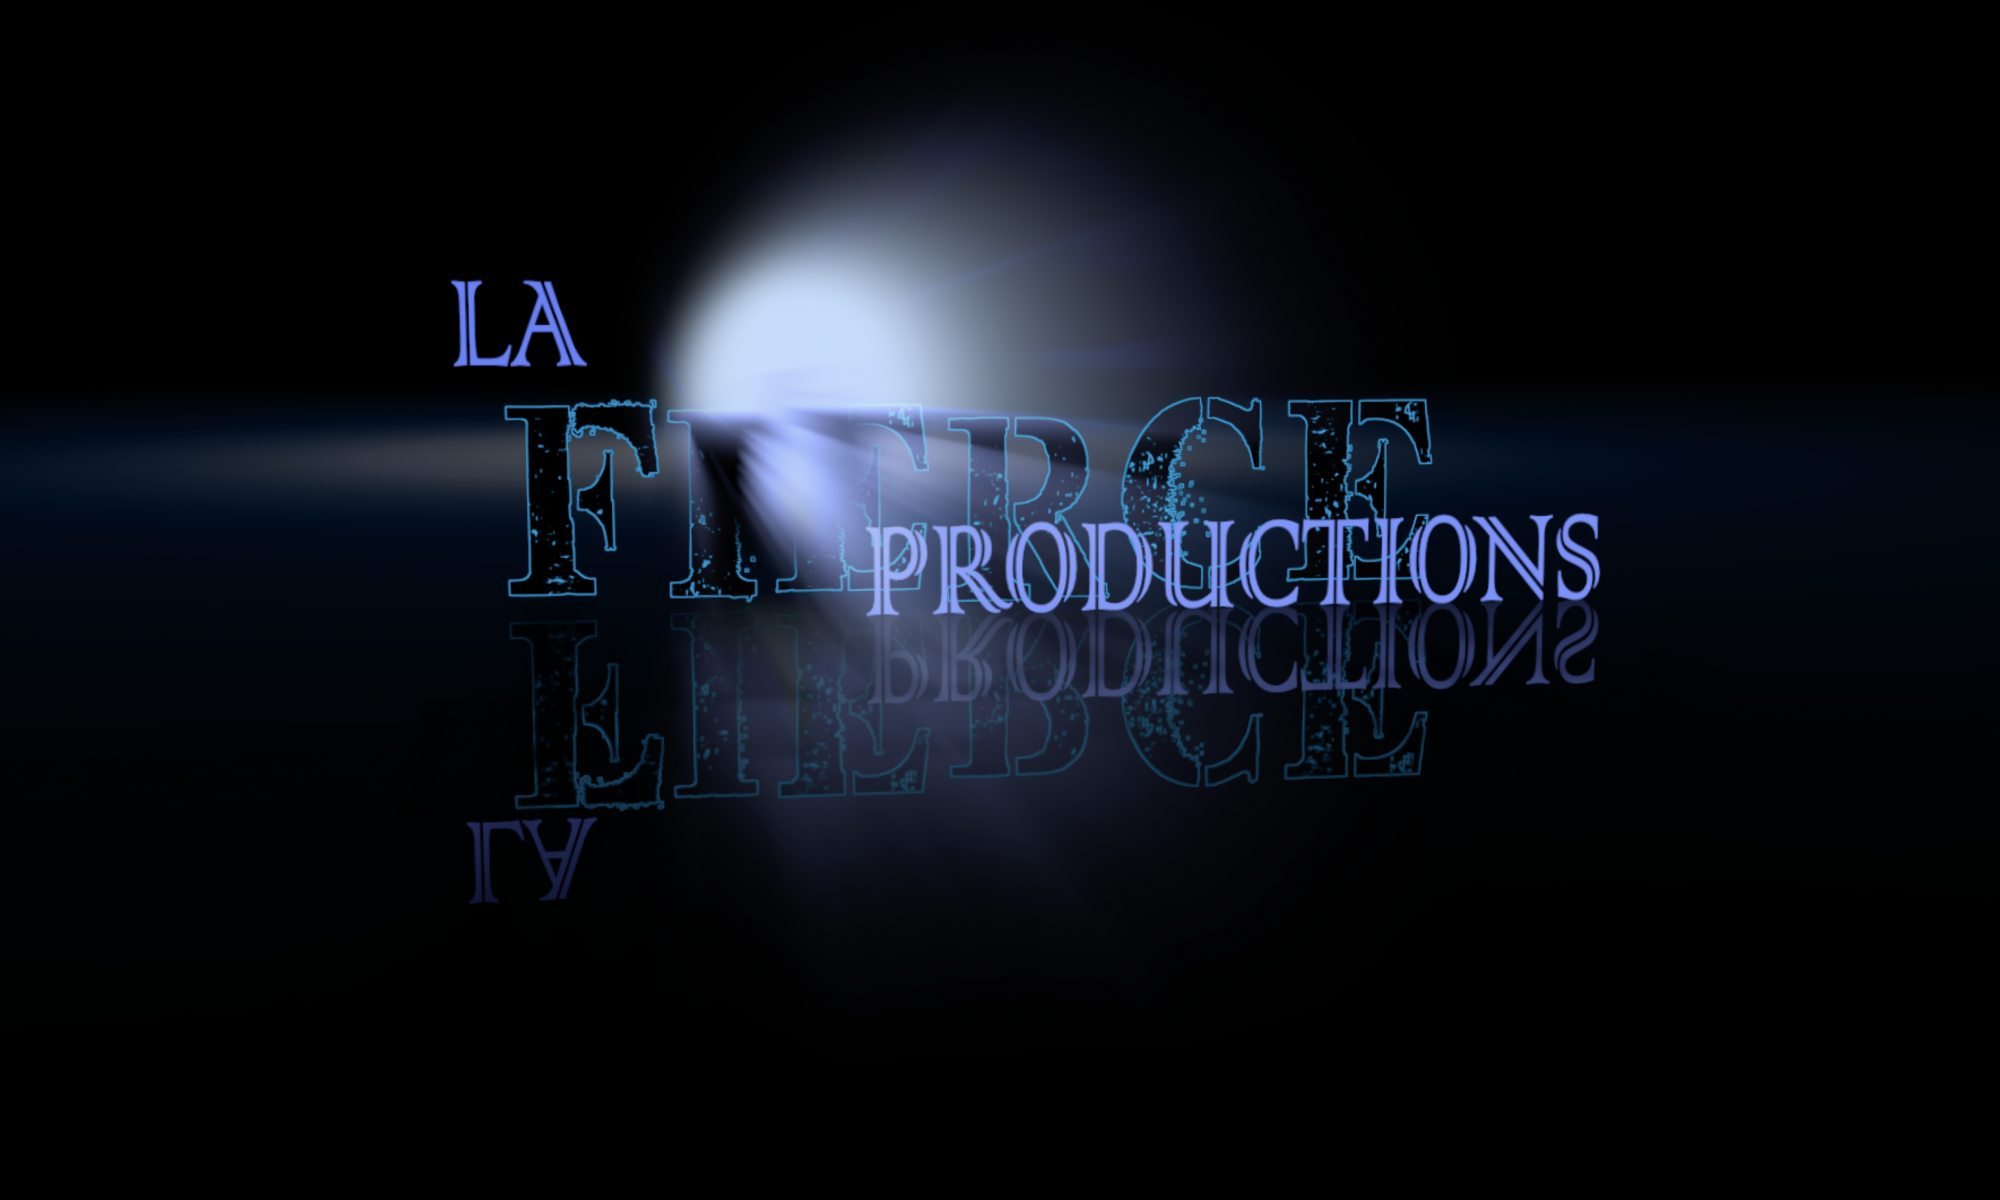 La Fierce Productions